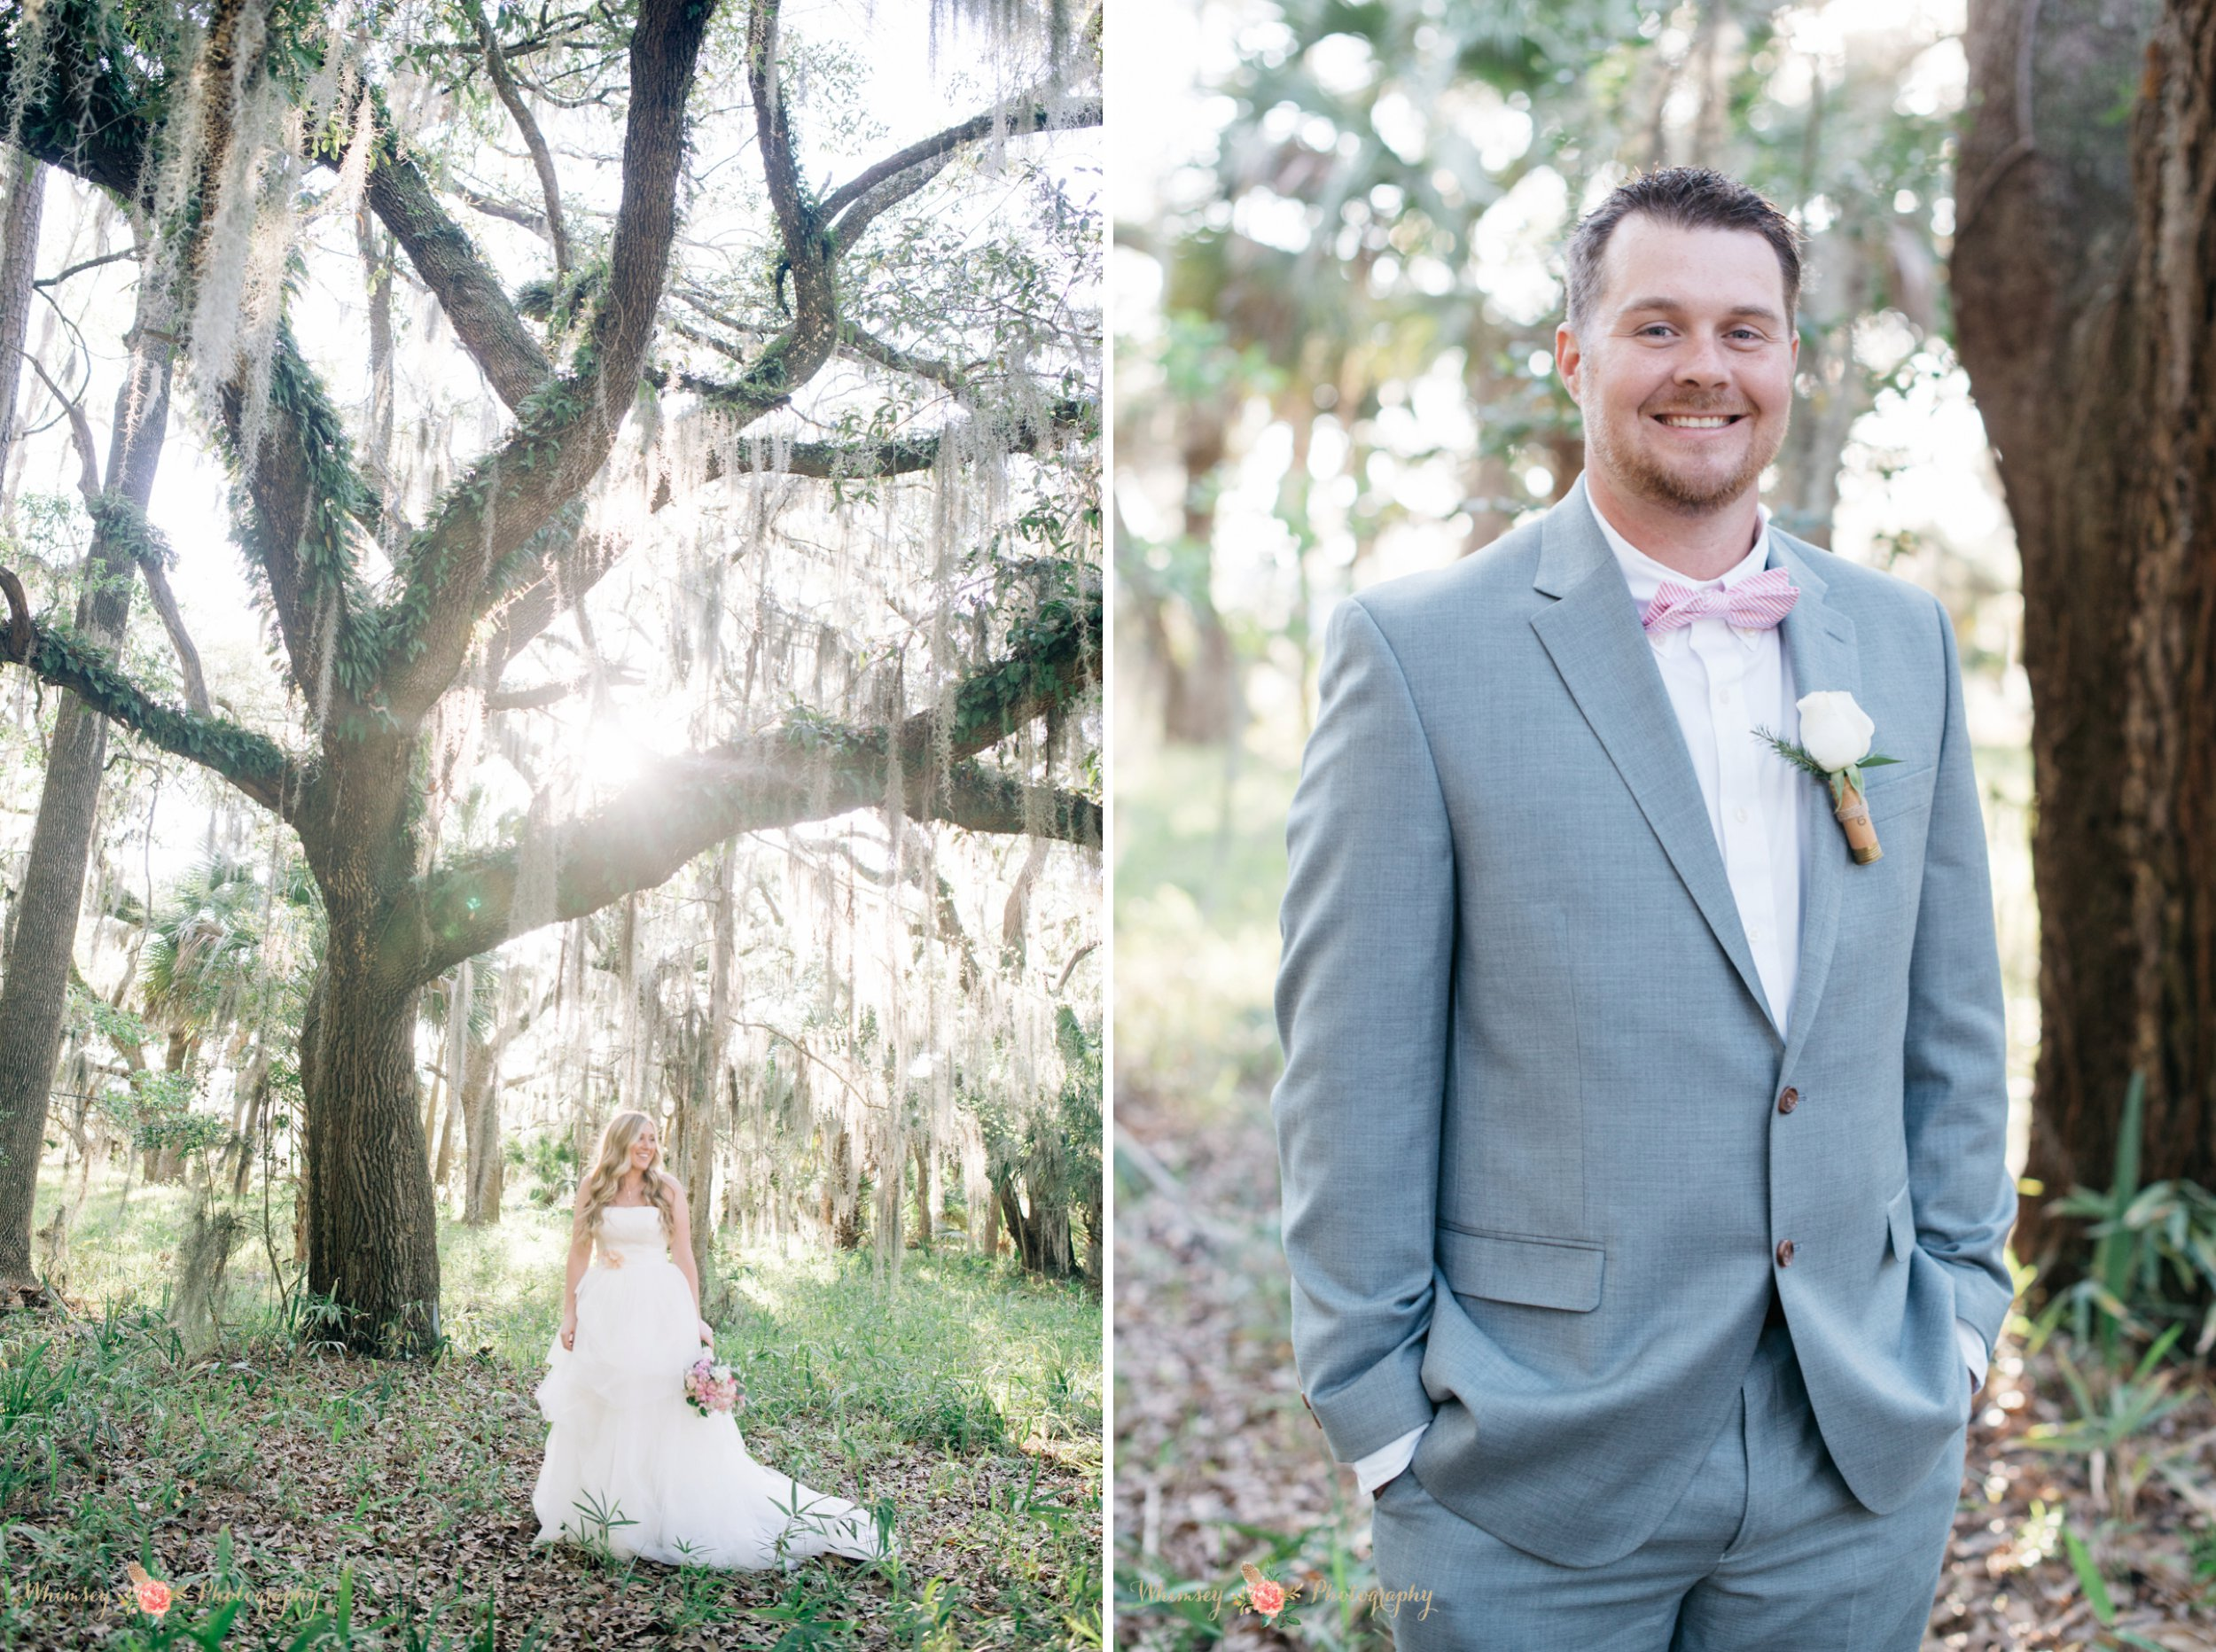 Charleston-wedding-photographer-53.jpg